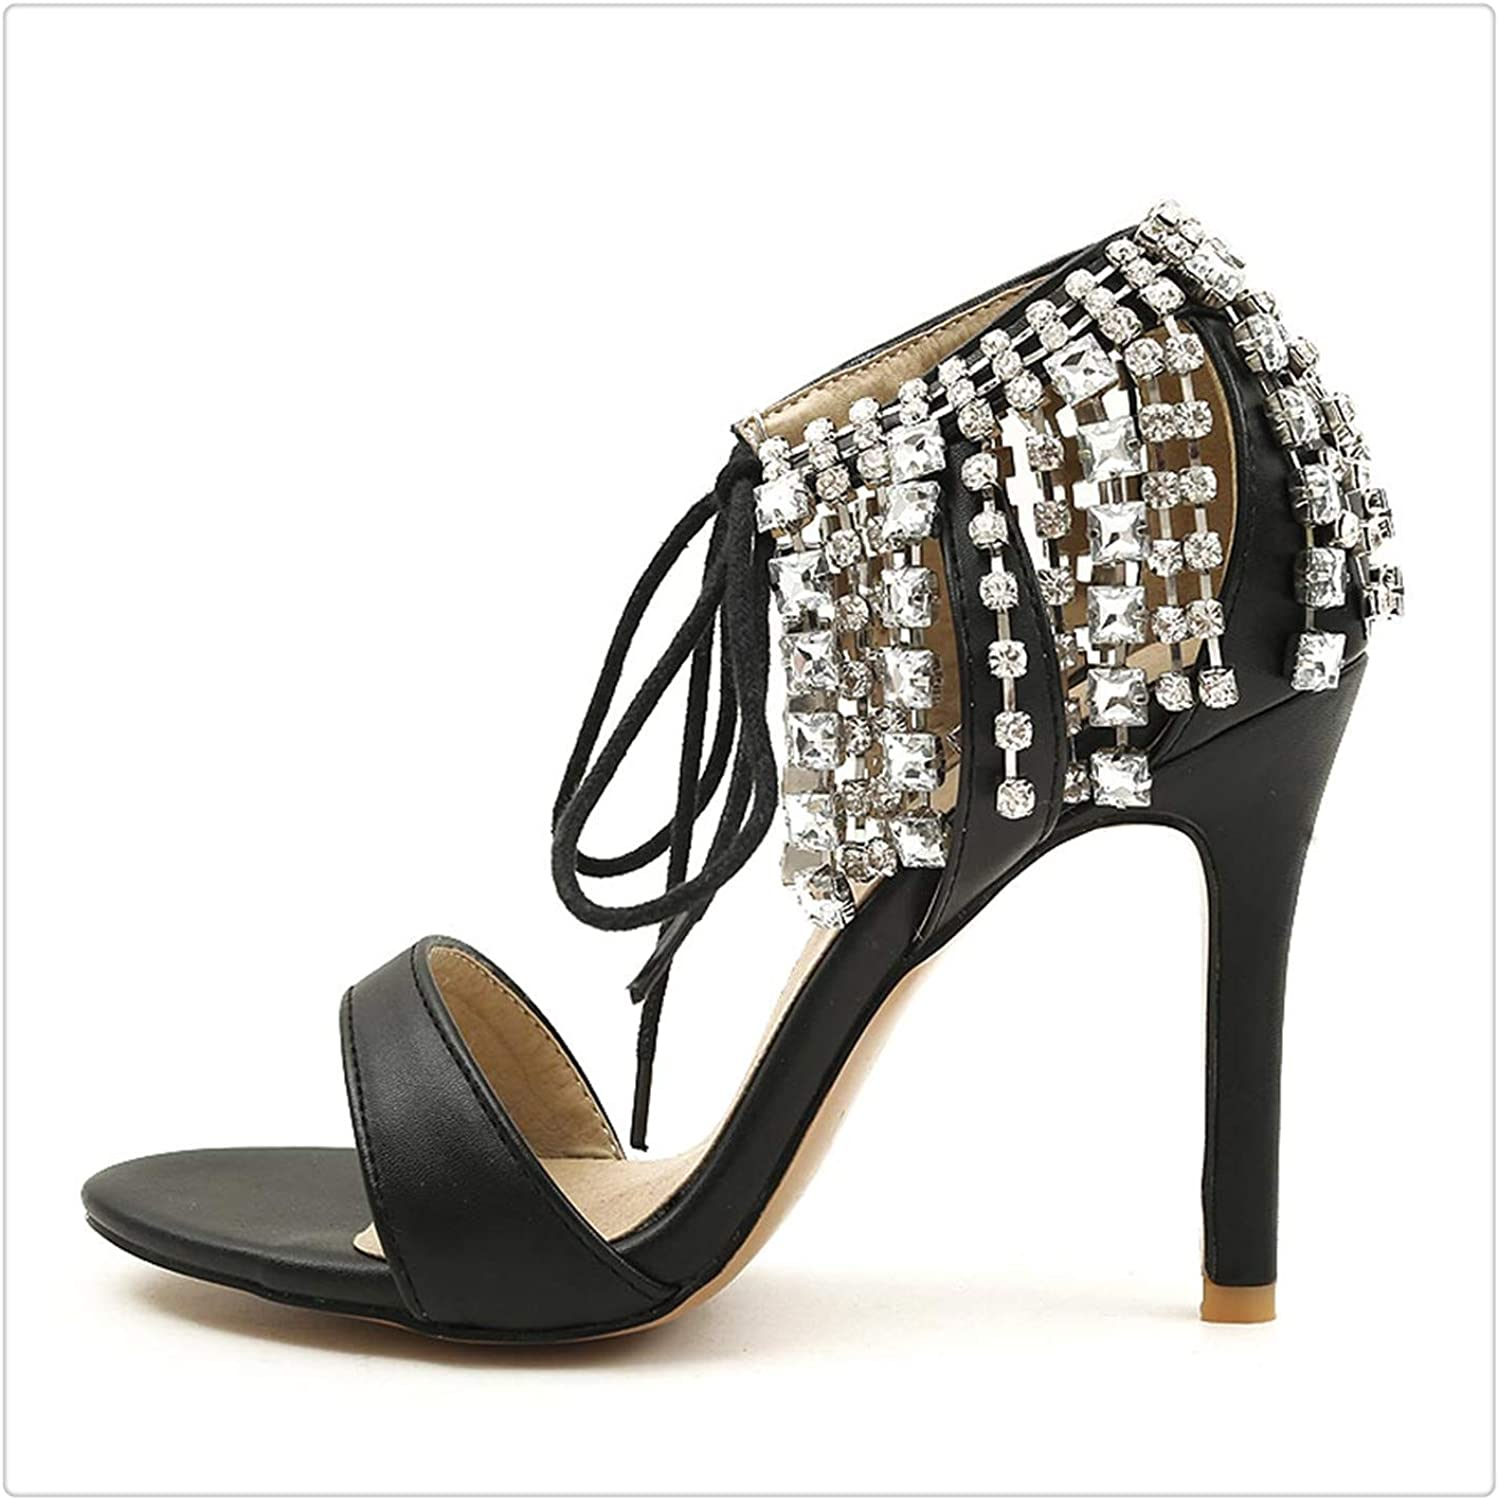 Yyixianma Sandals Thin Heel Lace Up Cut-Outs Strappy Ankle Woman Stiletto High Heels shoes